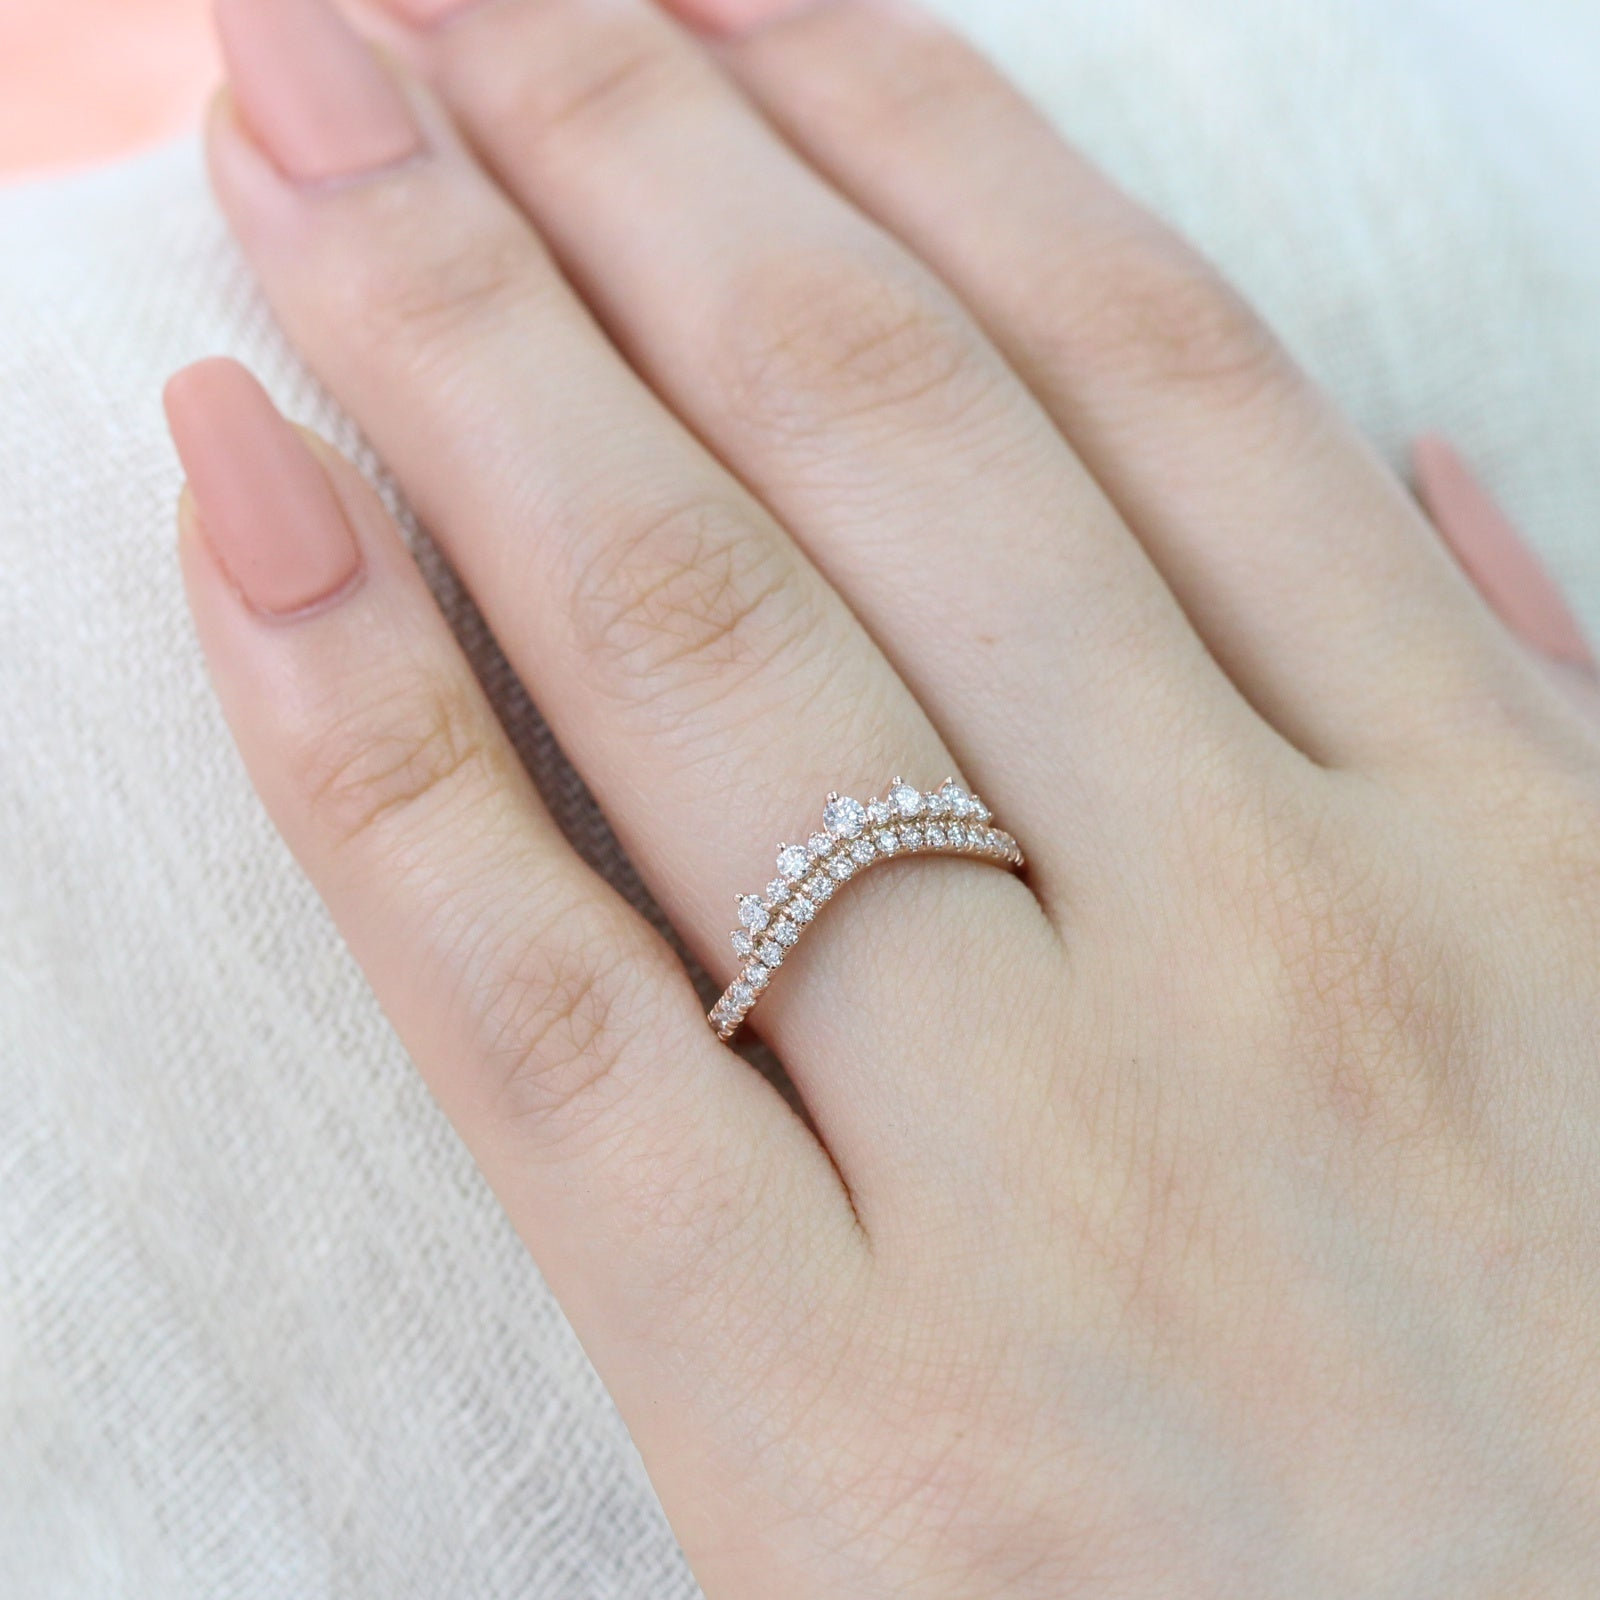 Rose Gold Wedding Ring.Crown Diamond Wedding Ring In Rose Gold Curved Band